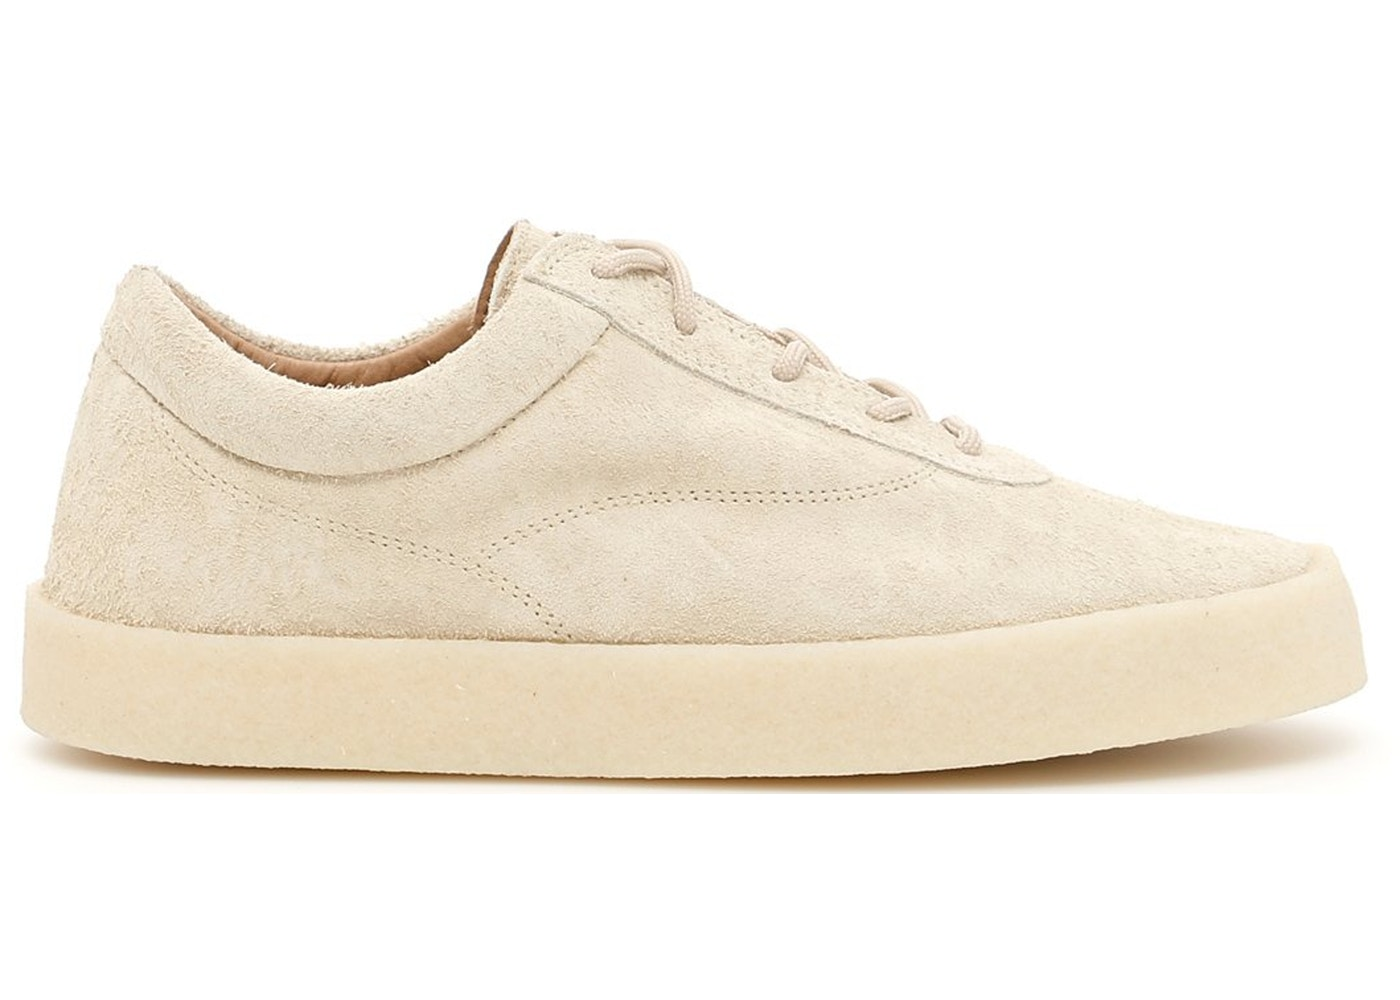 07bc496bc2329 Yeezy Crepe Sneaker Season 6 Thick Shaggy Suede Chalk - KM5001.037